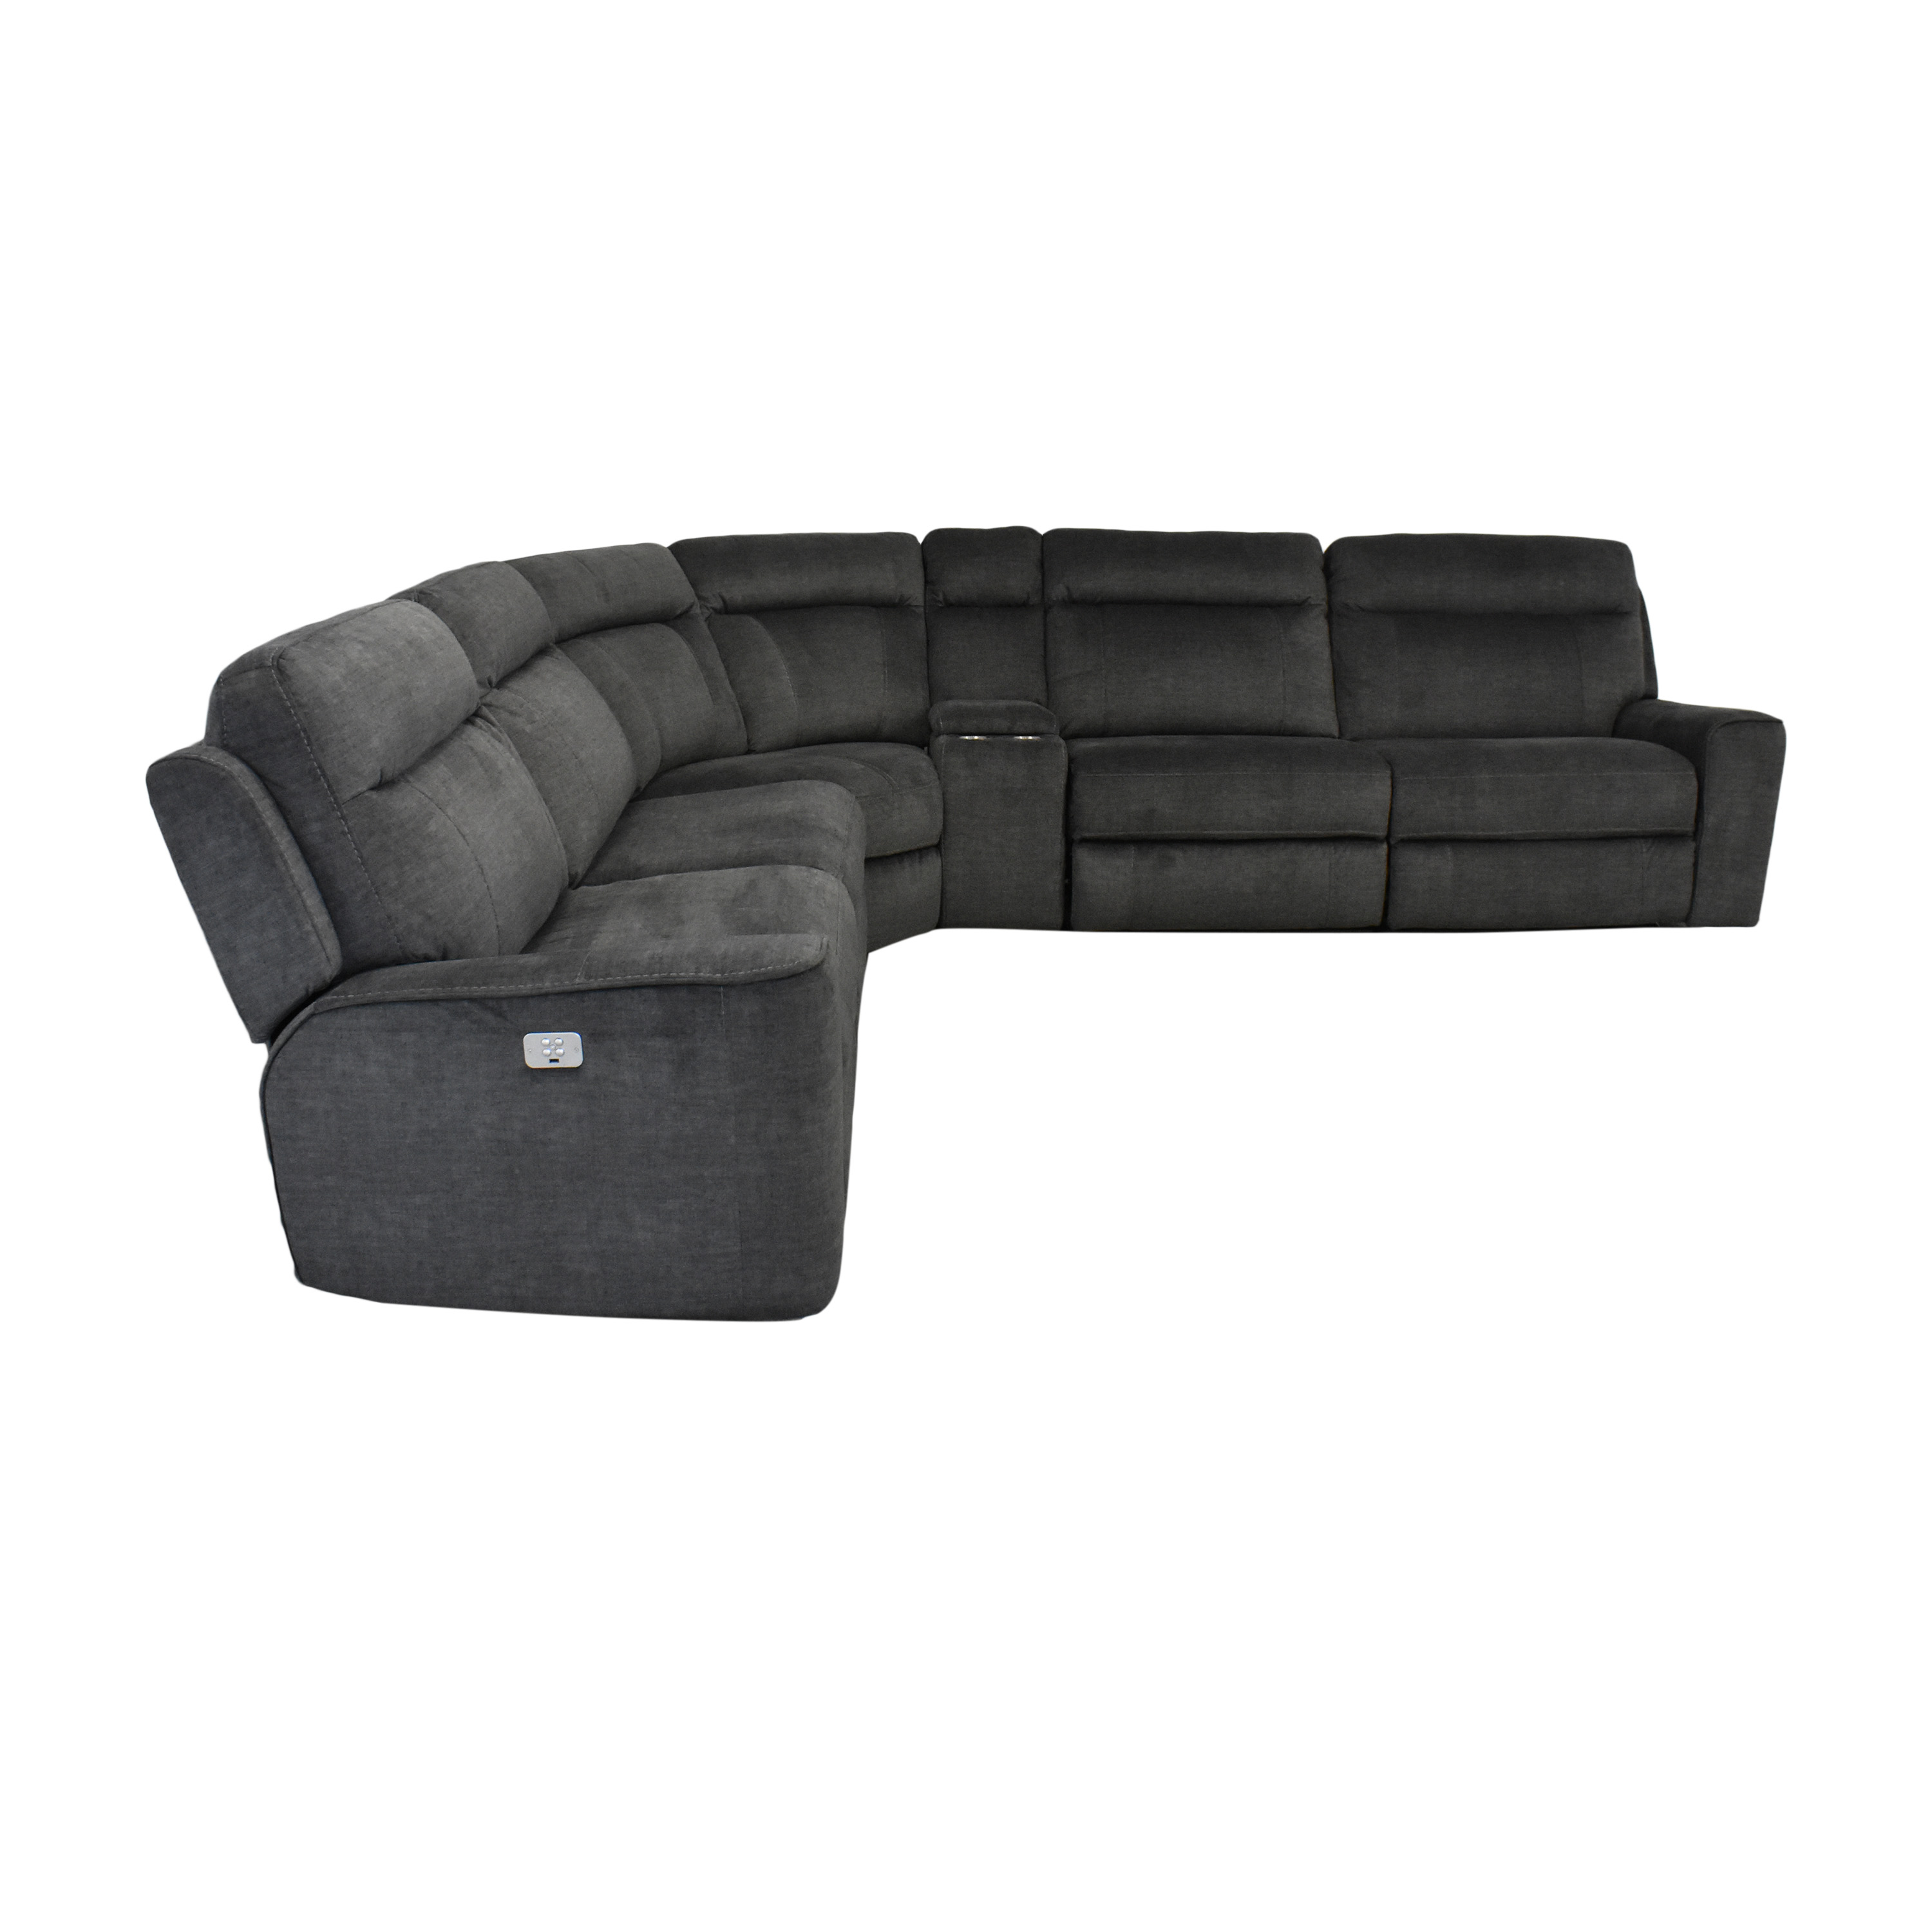 40 off parker house furniture parker house furniture parthenon modular sectional sofa sofas